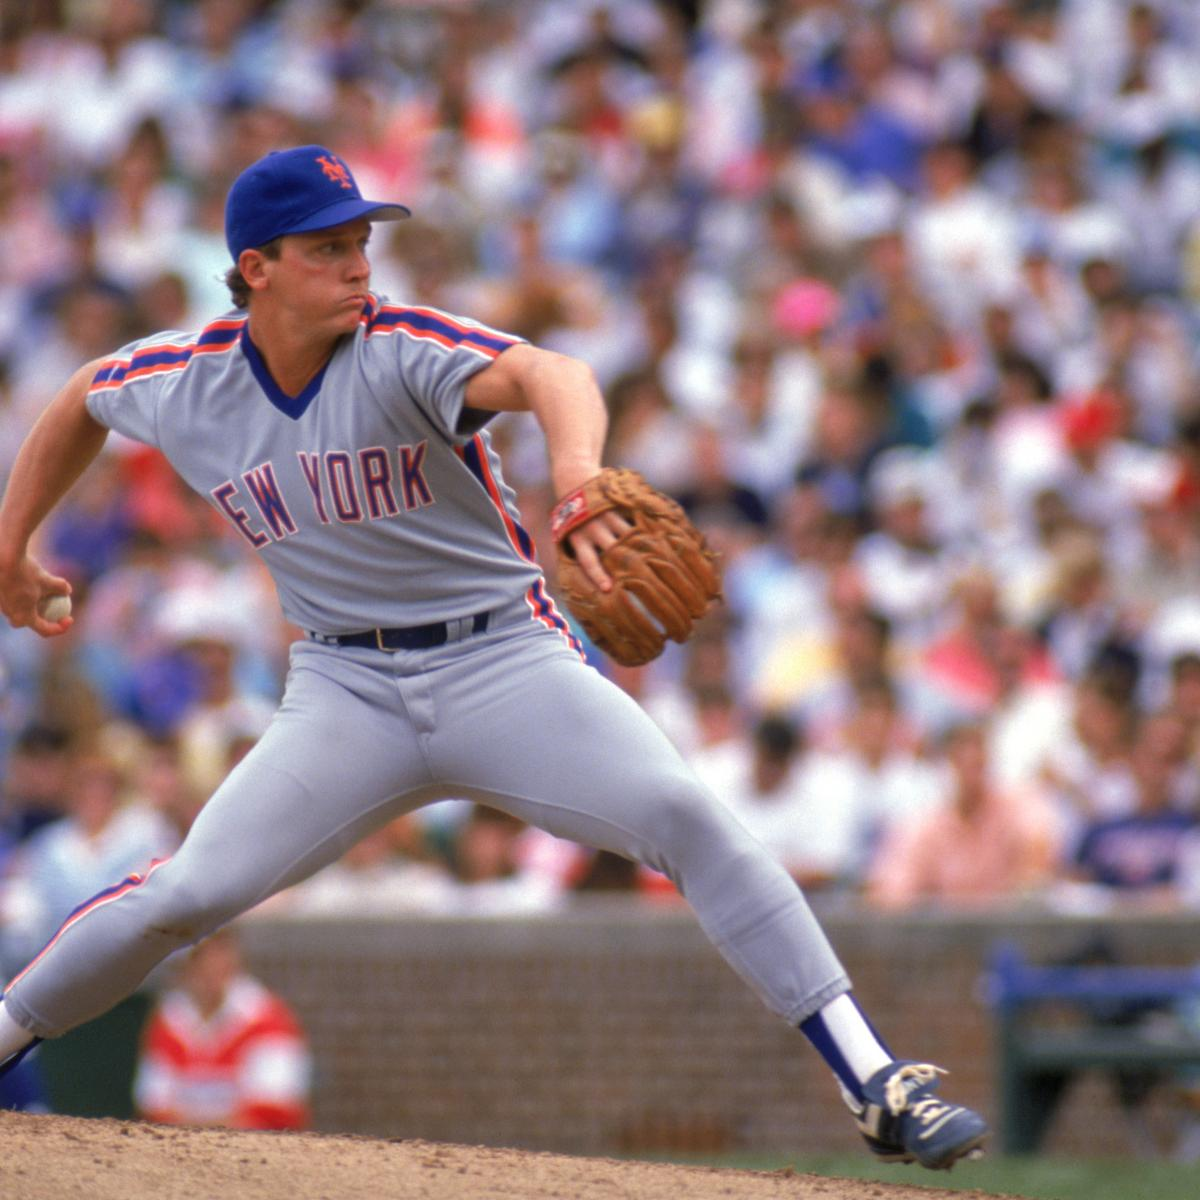 David Cone Cocaine And Sexual Accusations With The New York Mets